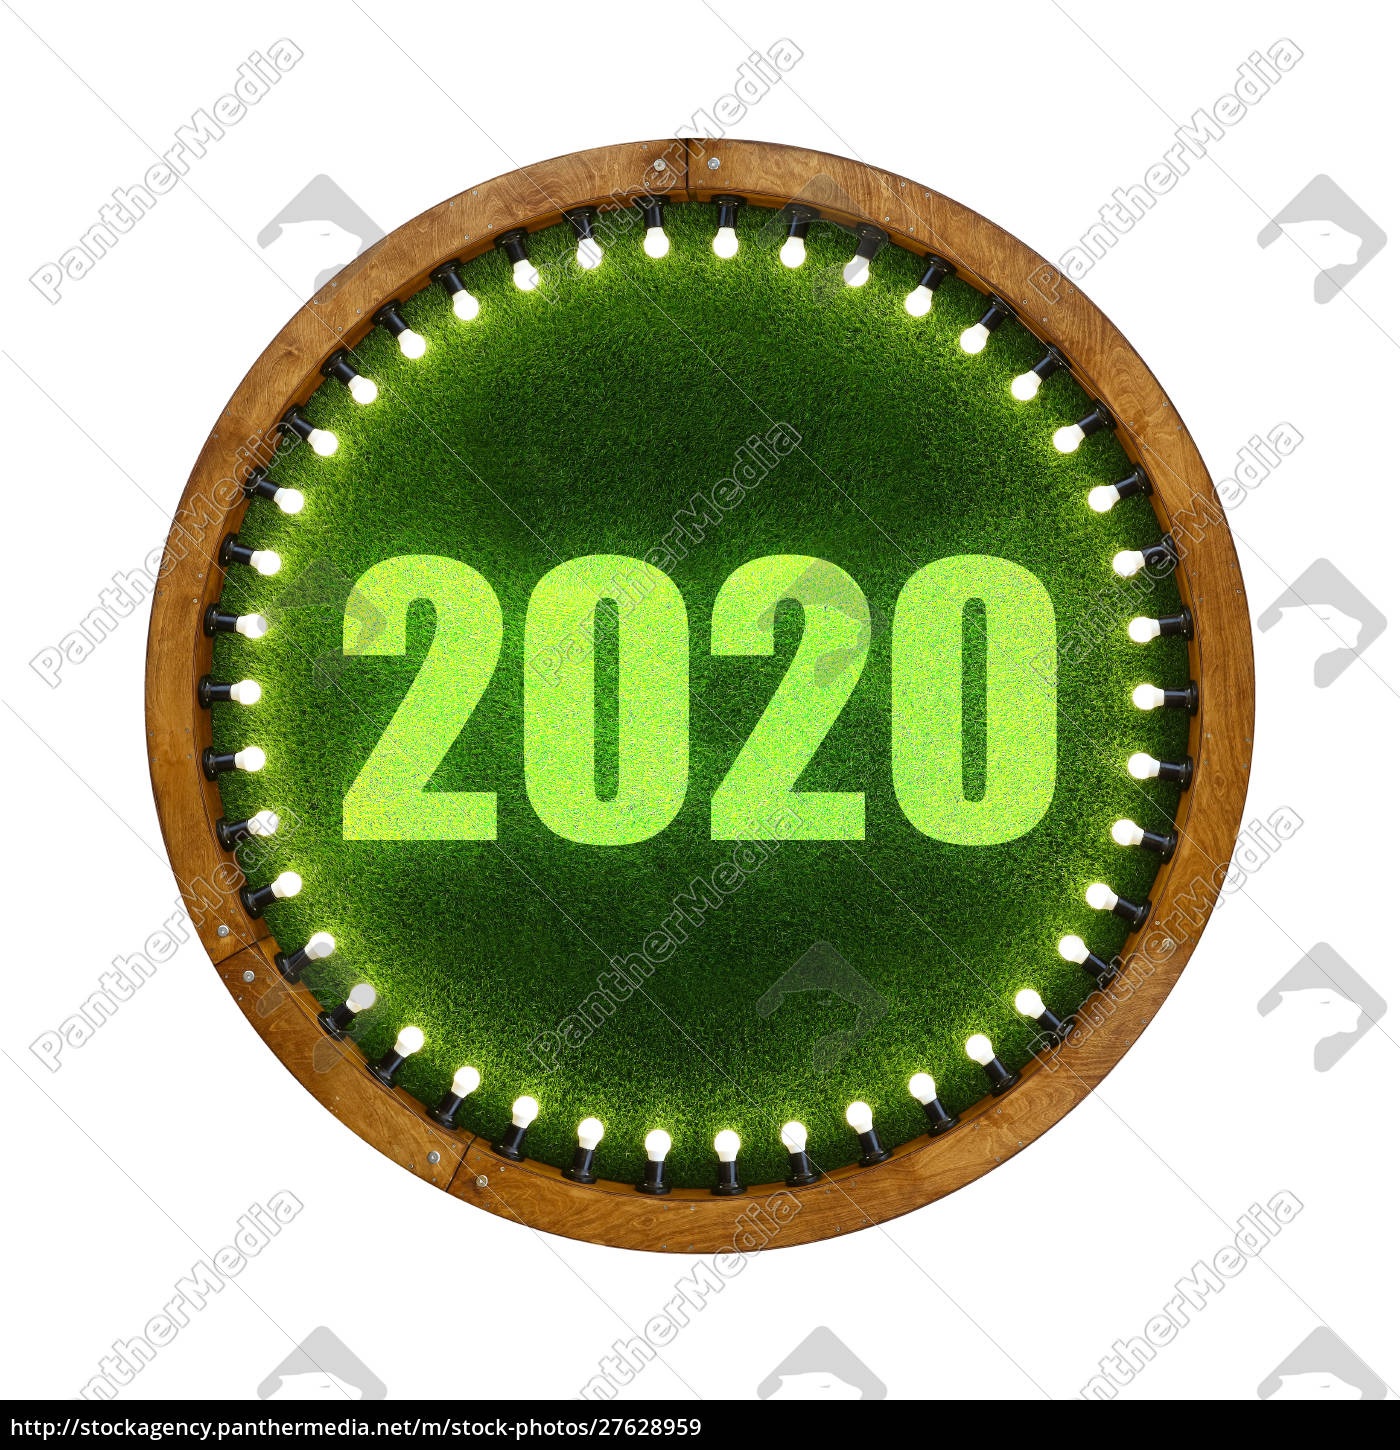 2020, sign, over, round, green, grass - 27628959